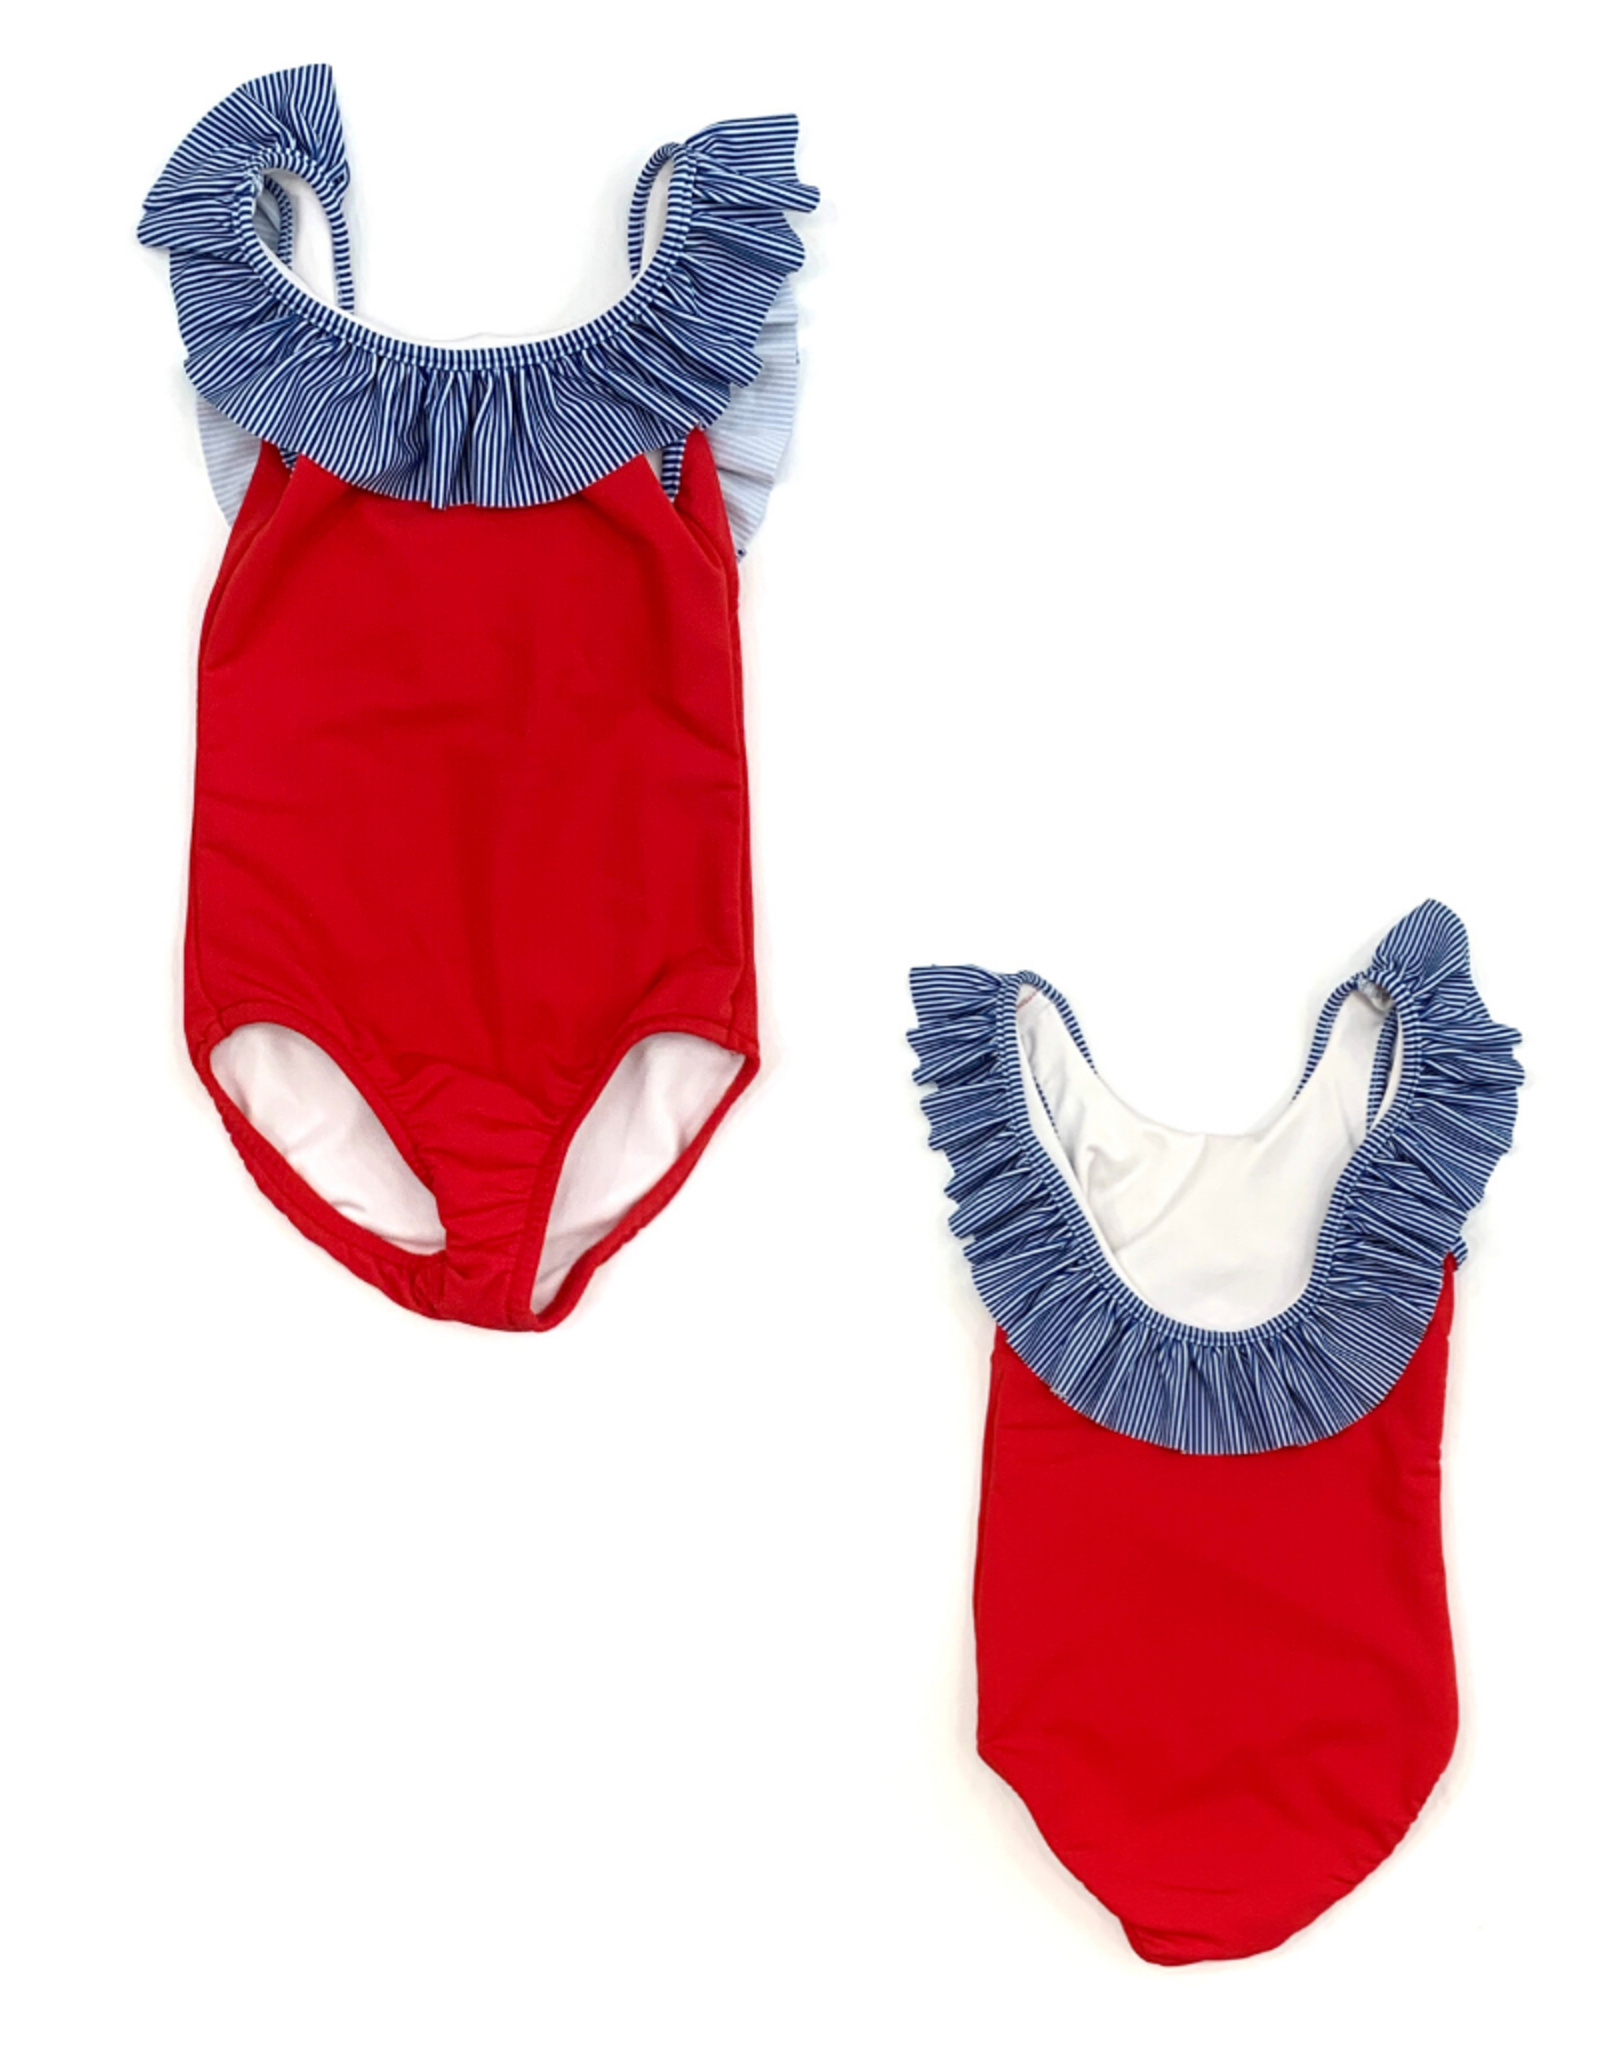 The Bailey Boys Red And Navy Striped Swimsuit